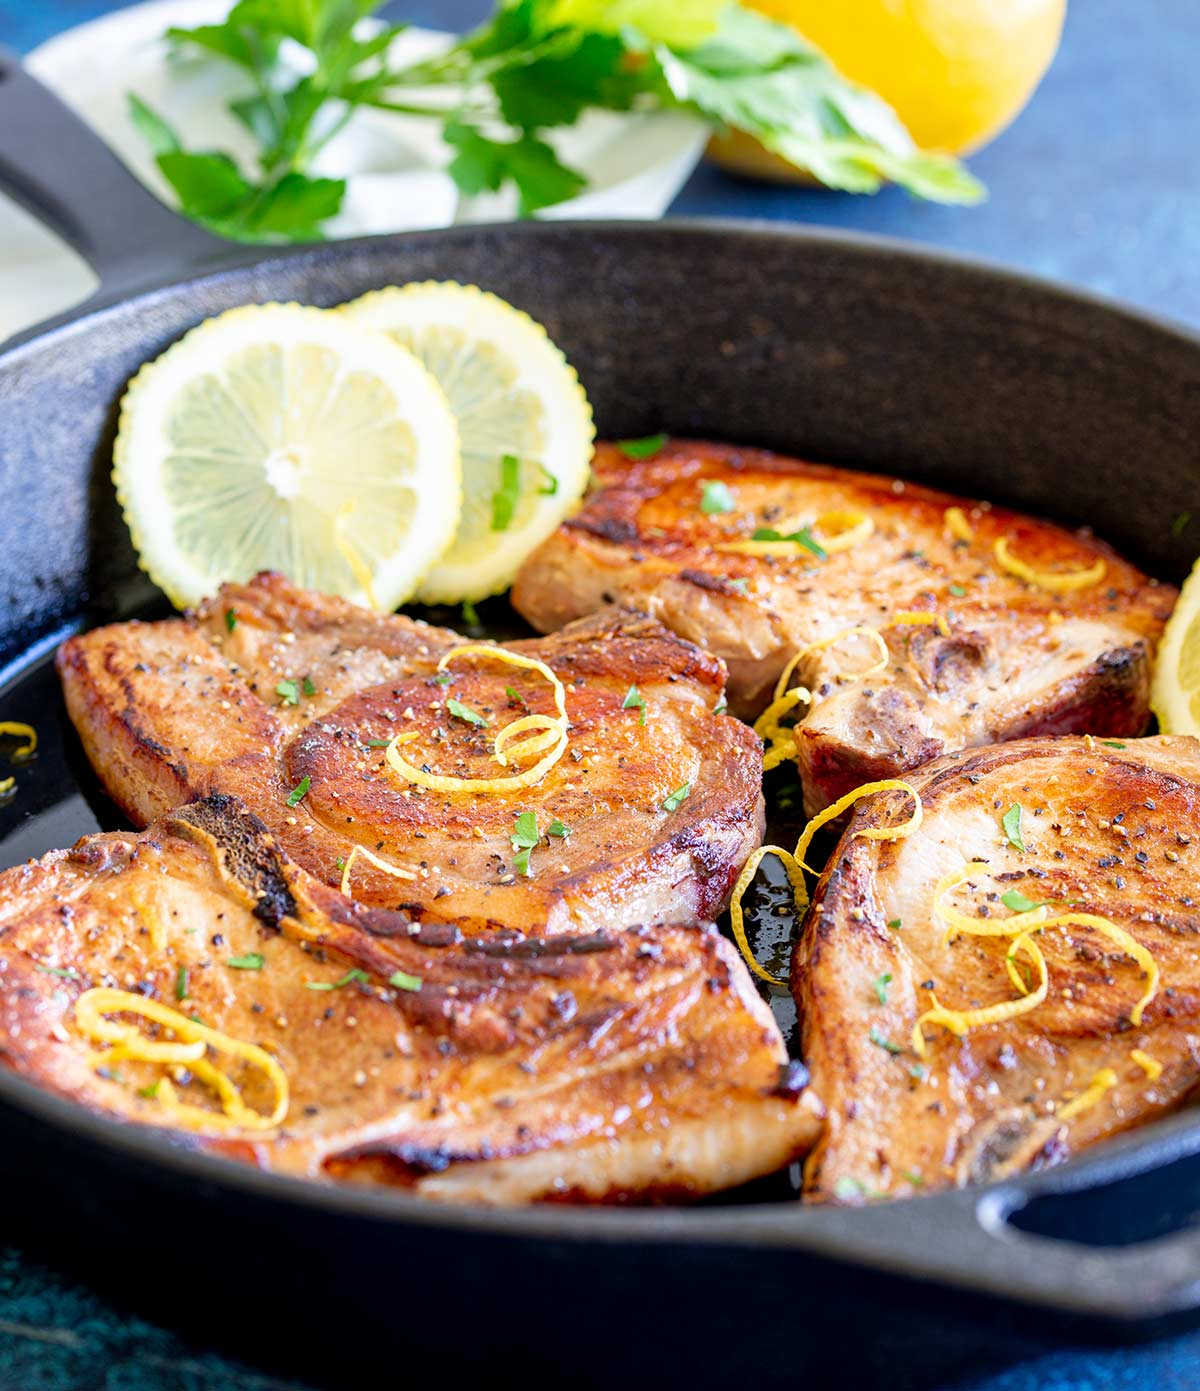 4 cooked chops in a pan with lemon and parsley in the background